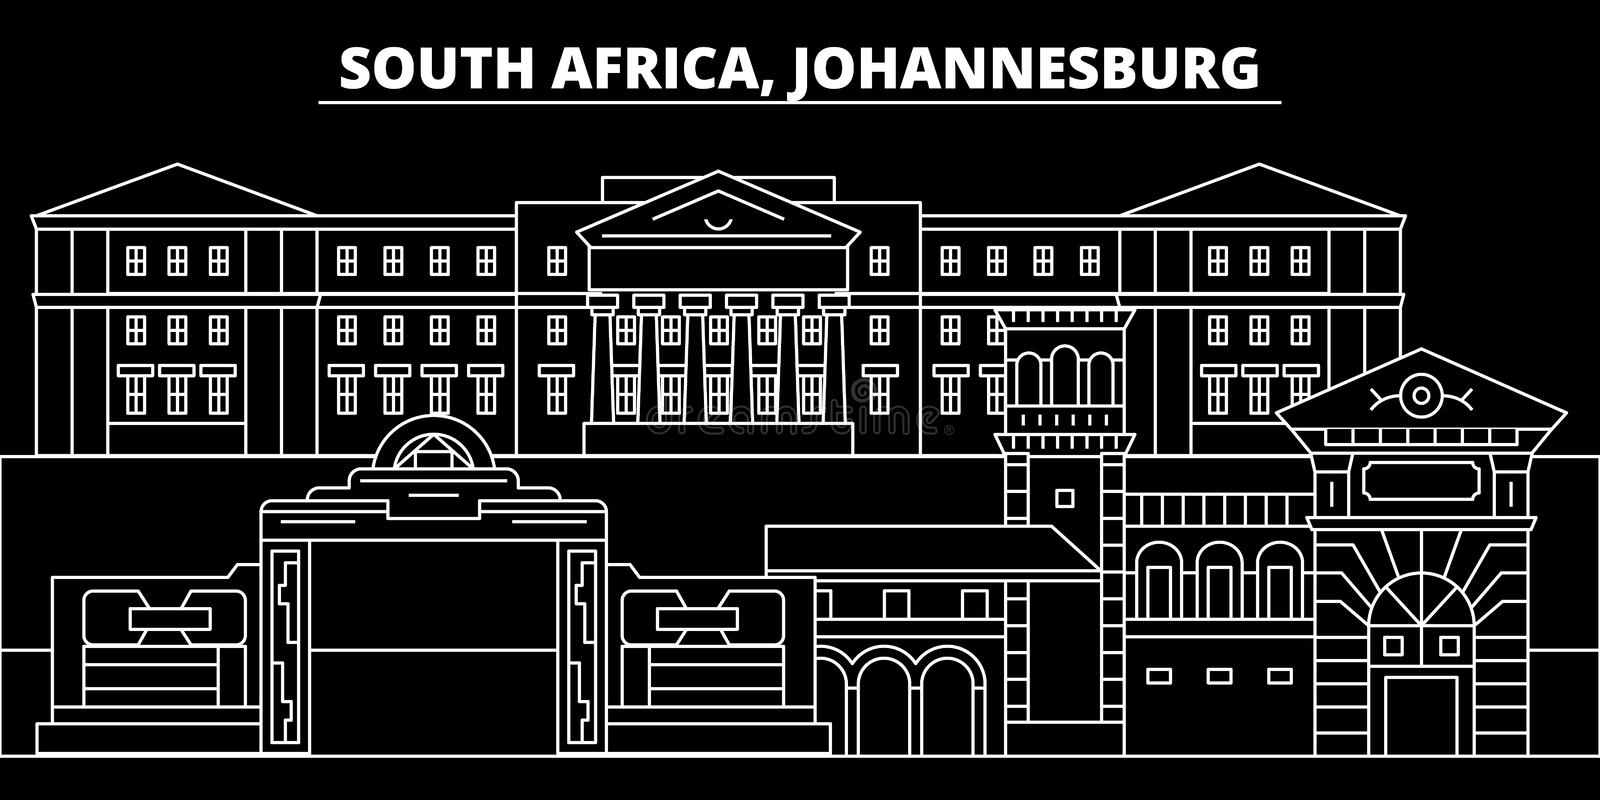 Johannesburg silhouette skyline. South Africa - Johannesburg vector city, african linear architecture. Johannesburg line royalty free illustration